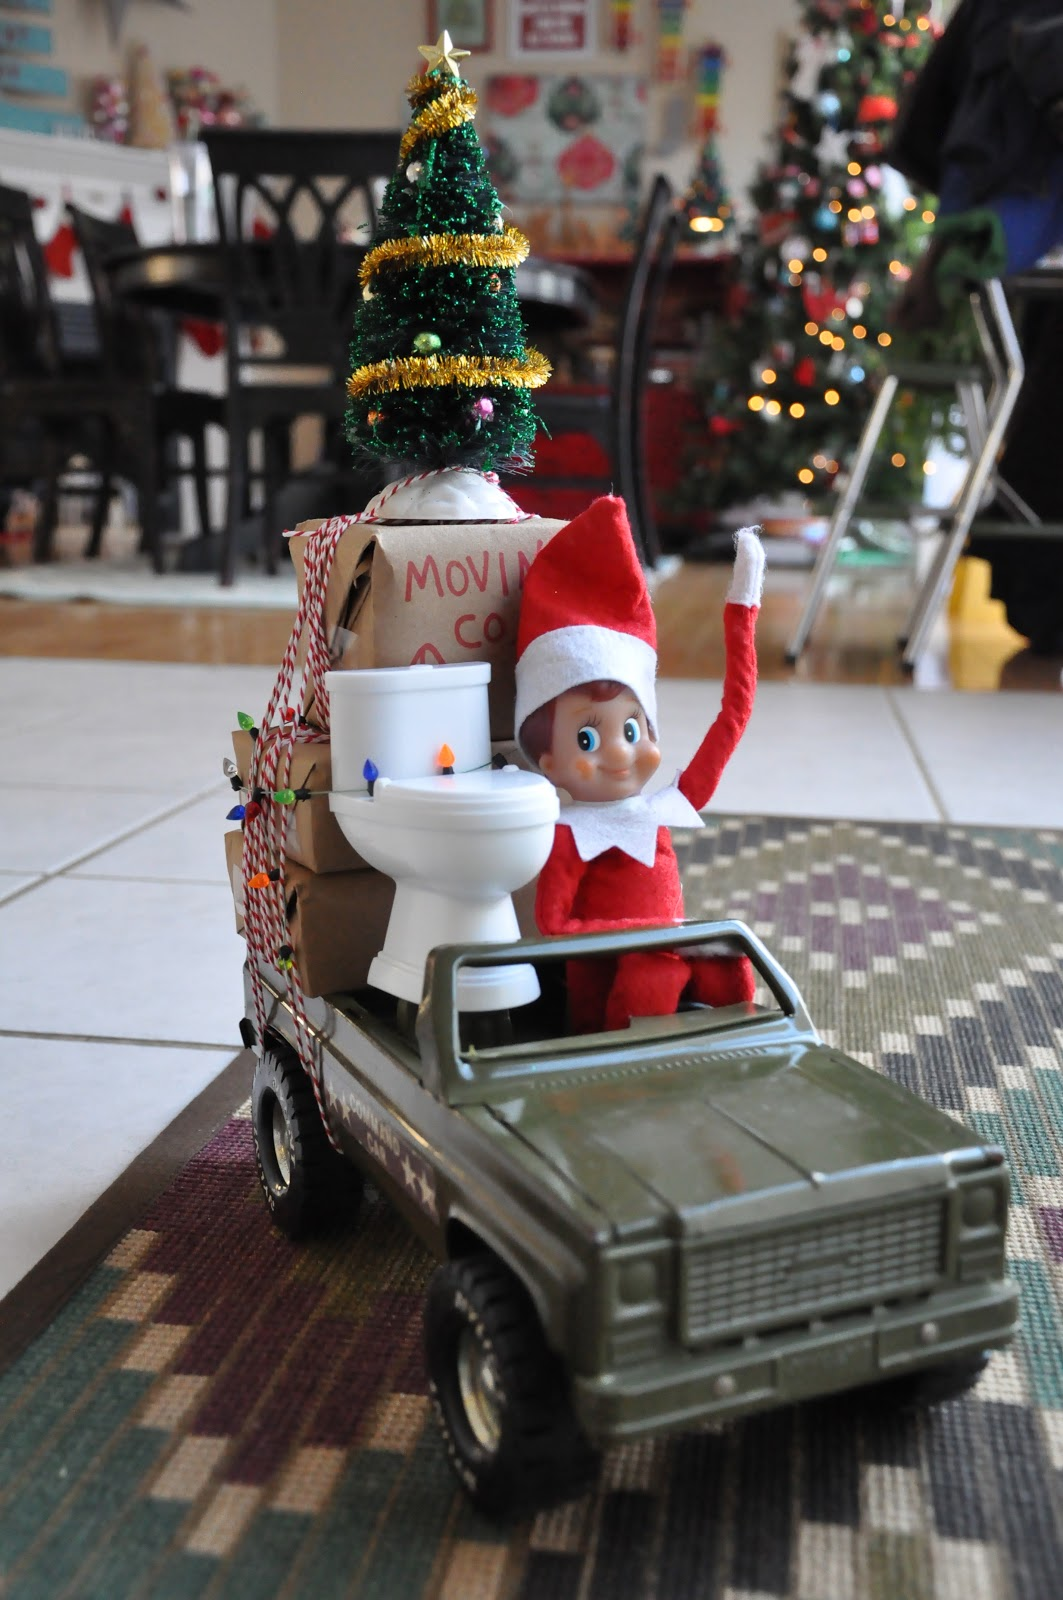 Check out these elf pictures to see Scout Elves in action—your Scout Elf is sure to be inspired, too! Before your Scout Elf gets to work recreating any of these ideas for The Elf on the Shelf ®, be sure to read these elf ideas safety warnings.